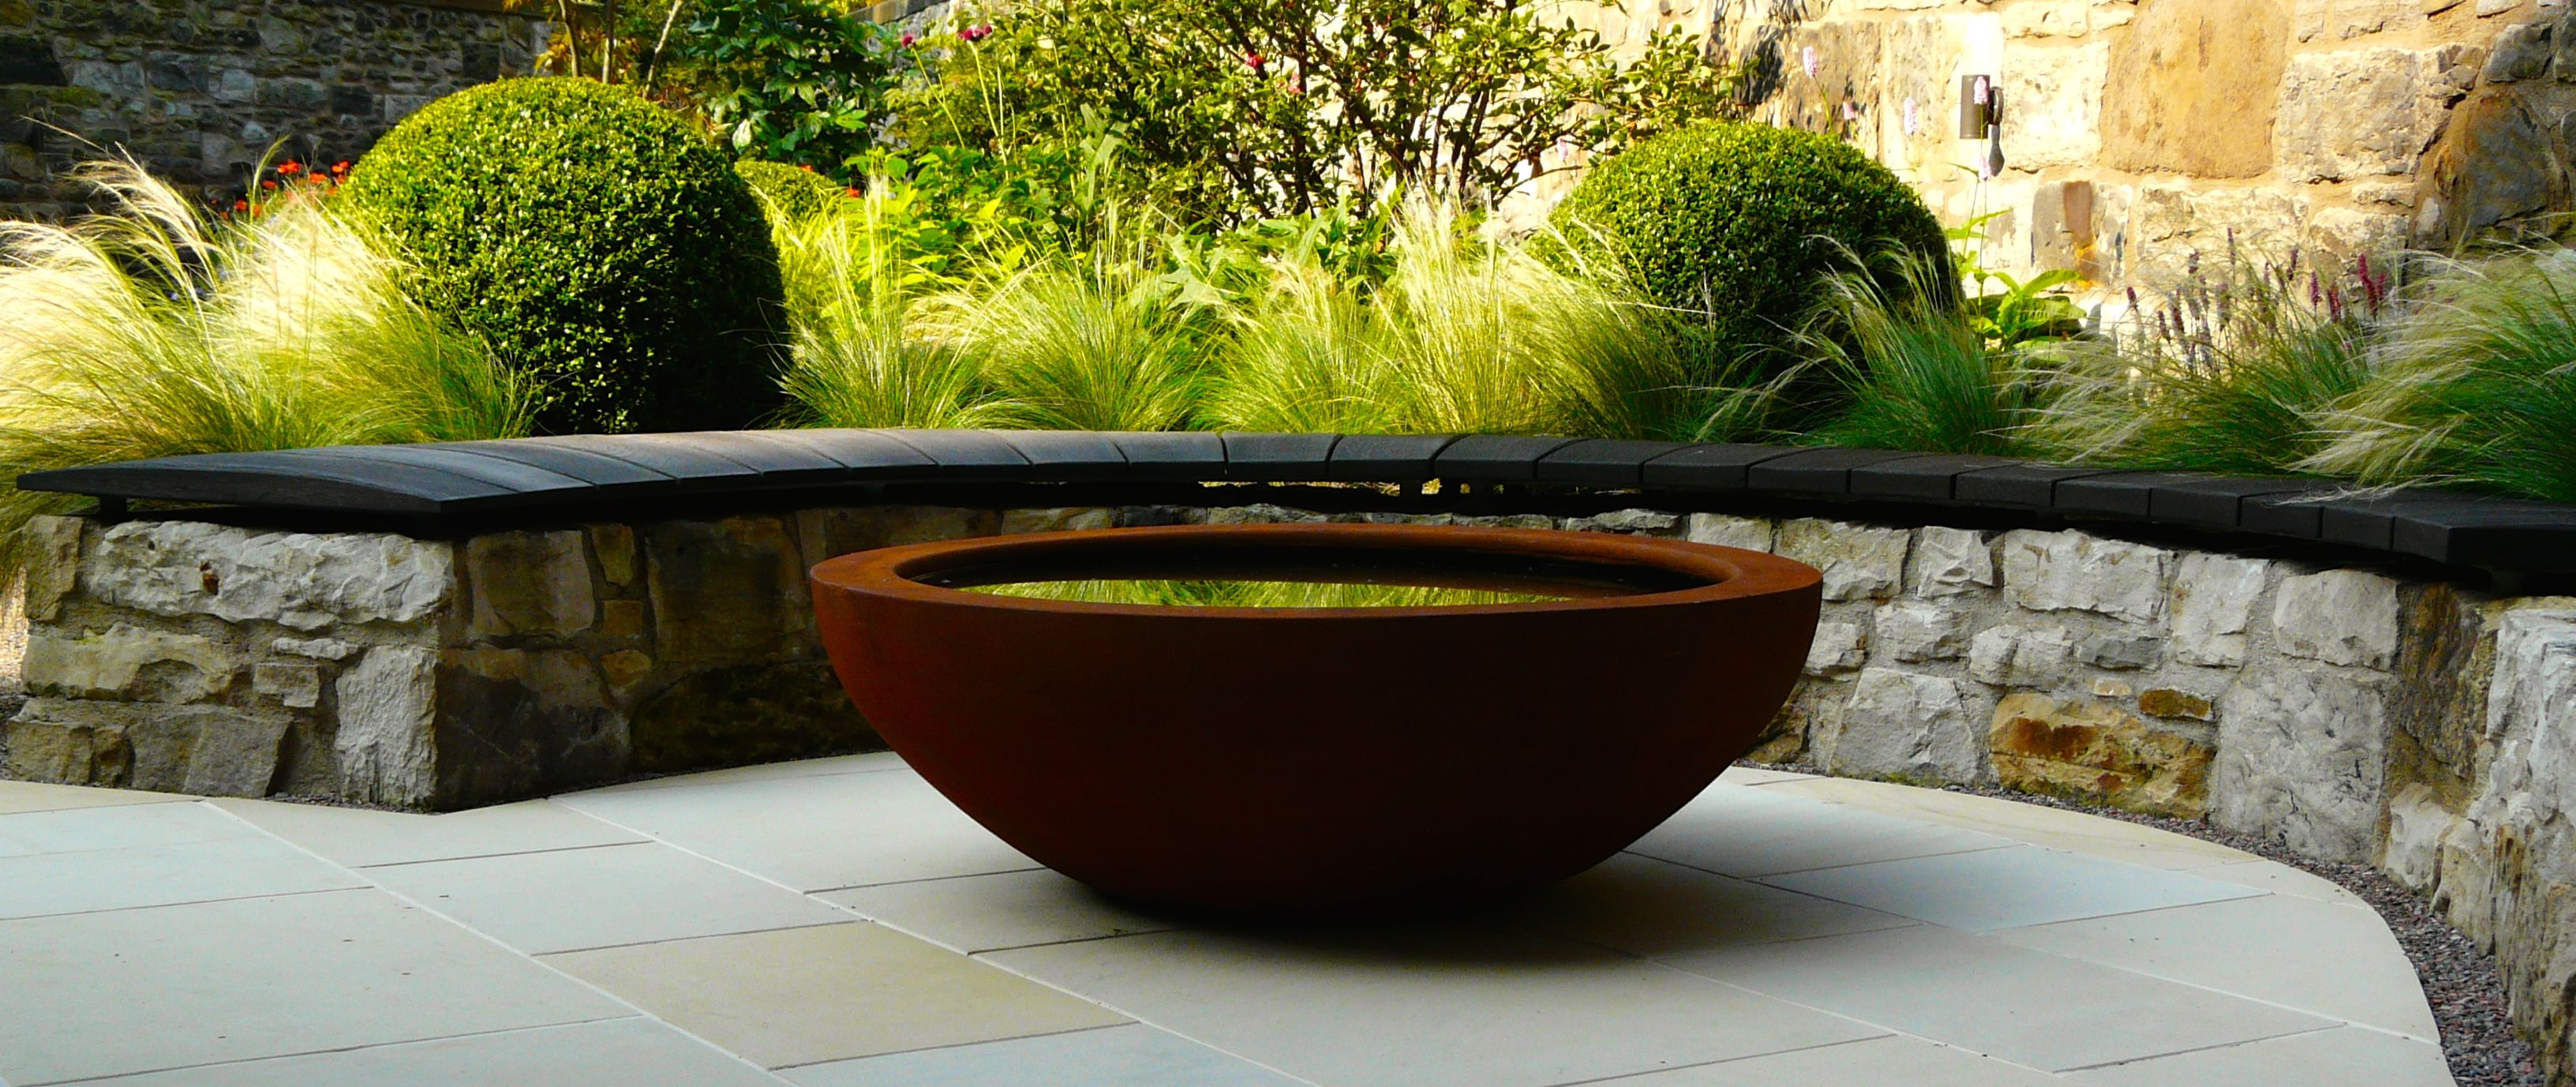 urbis design lily bowl in rust finish with scorched oak bench